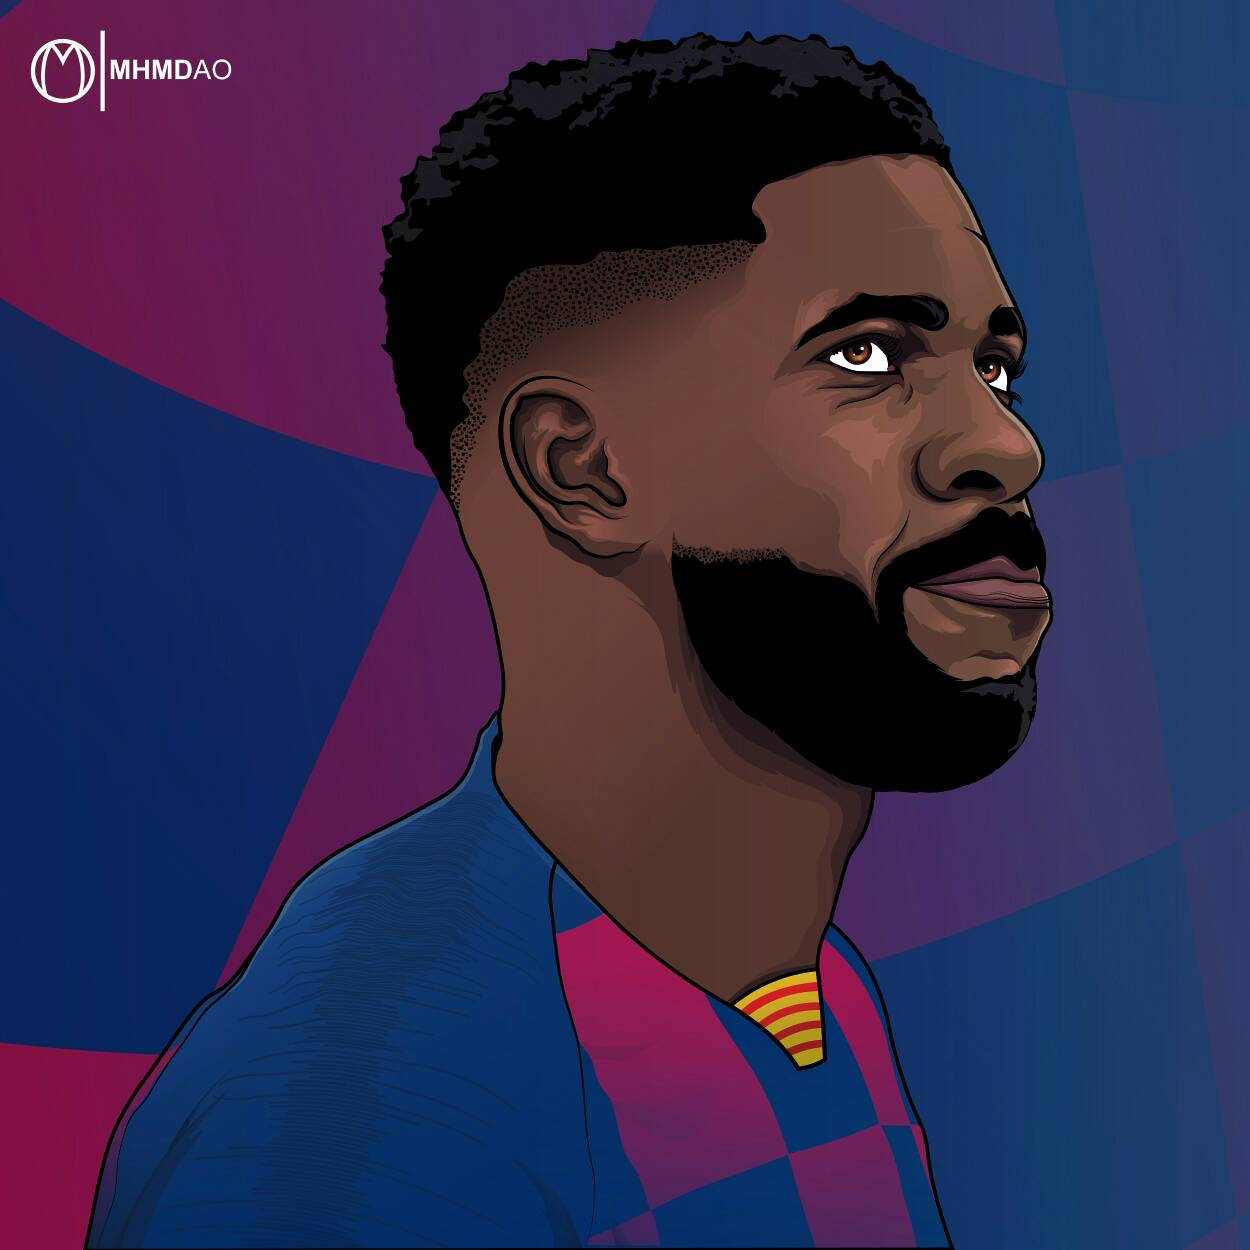 Samuel Umtiti - Drawing by MhmdAo on DeviantArt